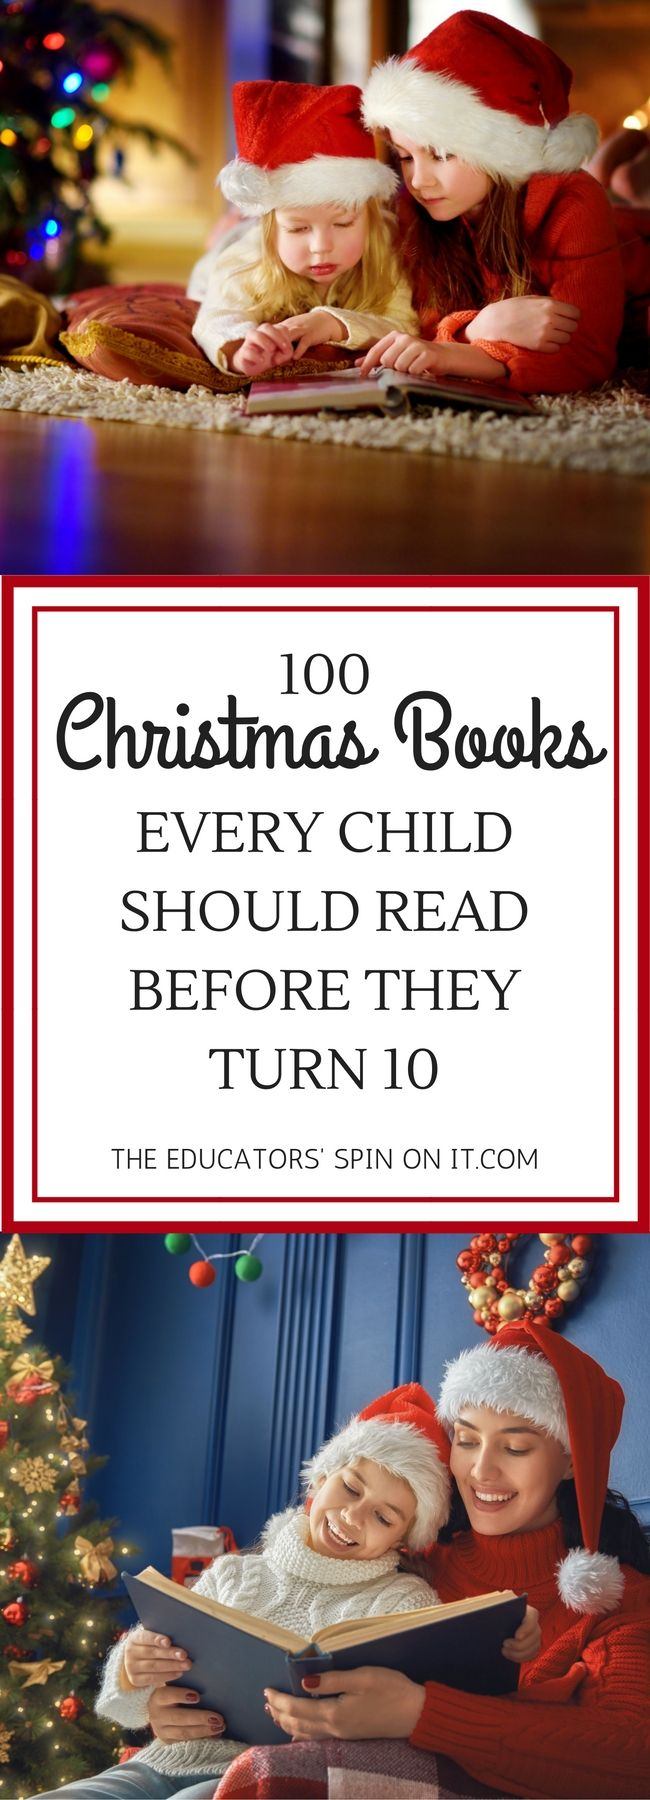 100 Christmas Books Every Child Should Read Before They turn 10!  A collection of holiday books to create memorable moments together as you celebrate Christmas.  #christmasbooks #booklist #christmas #familytime